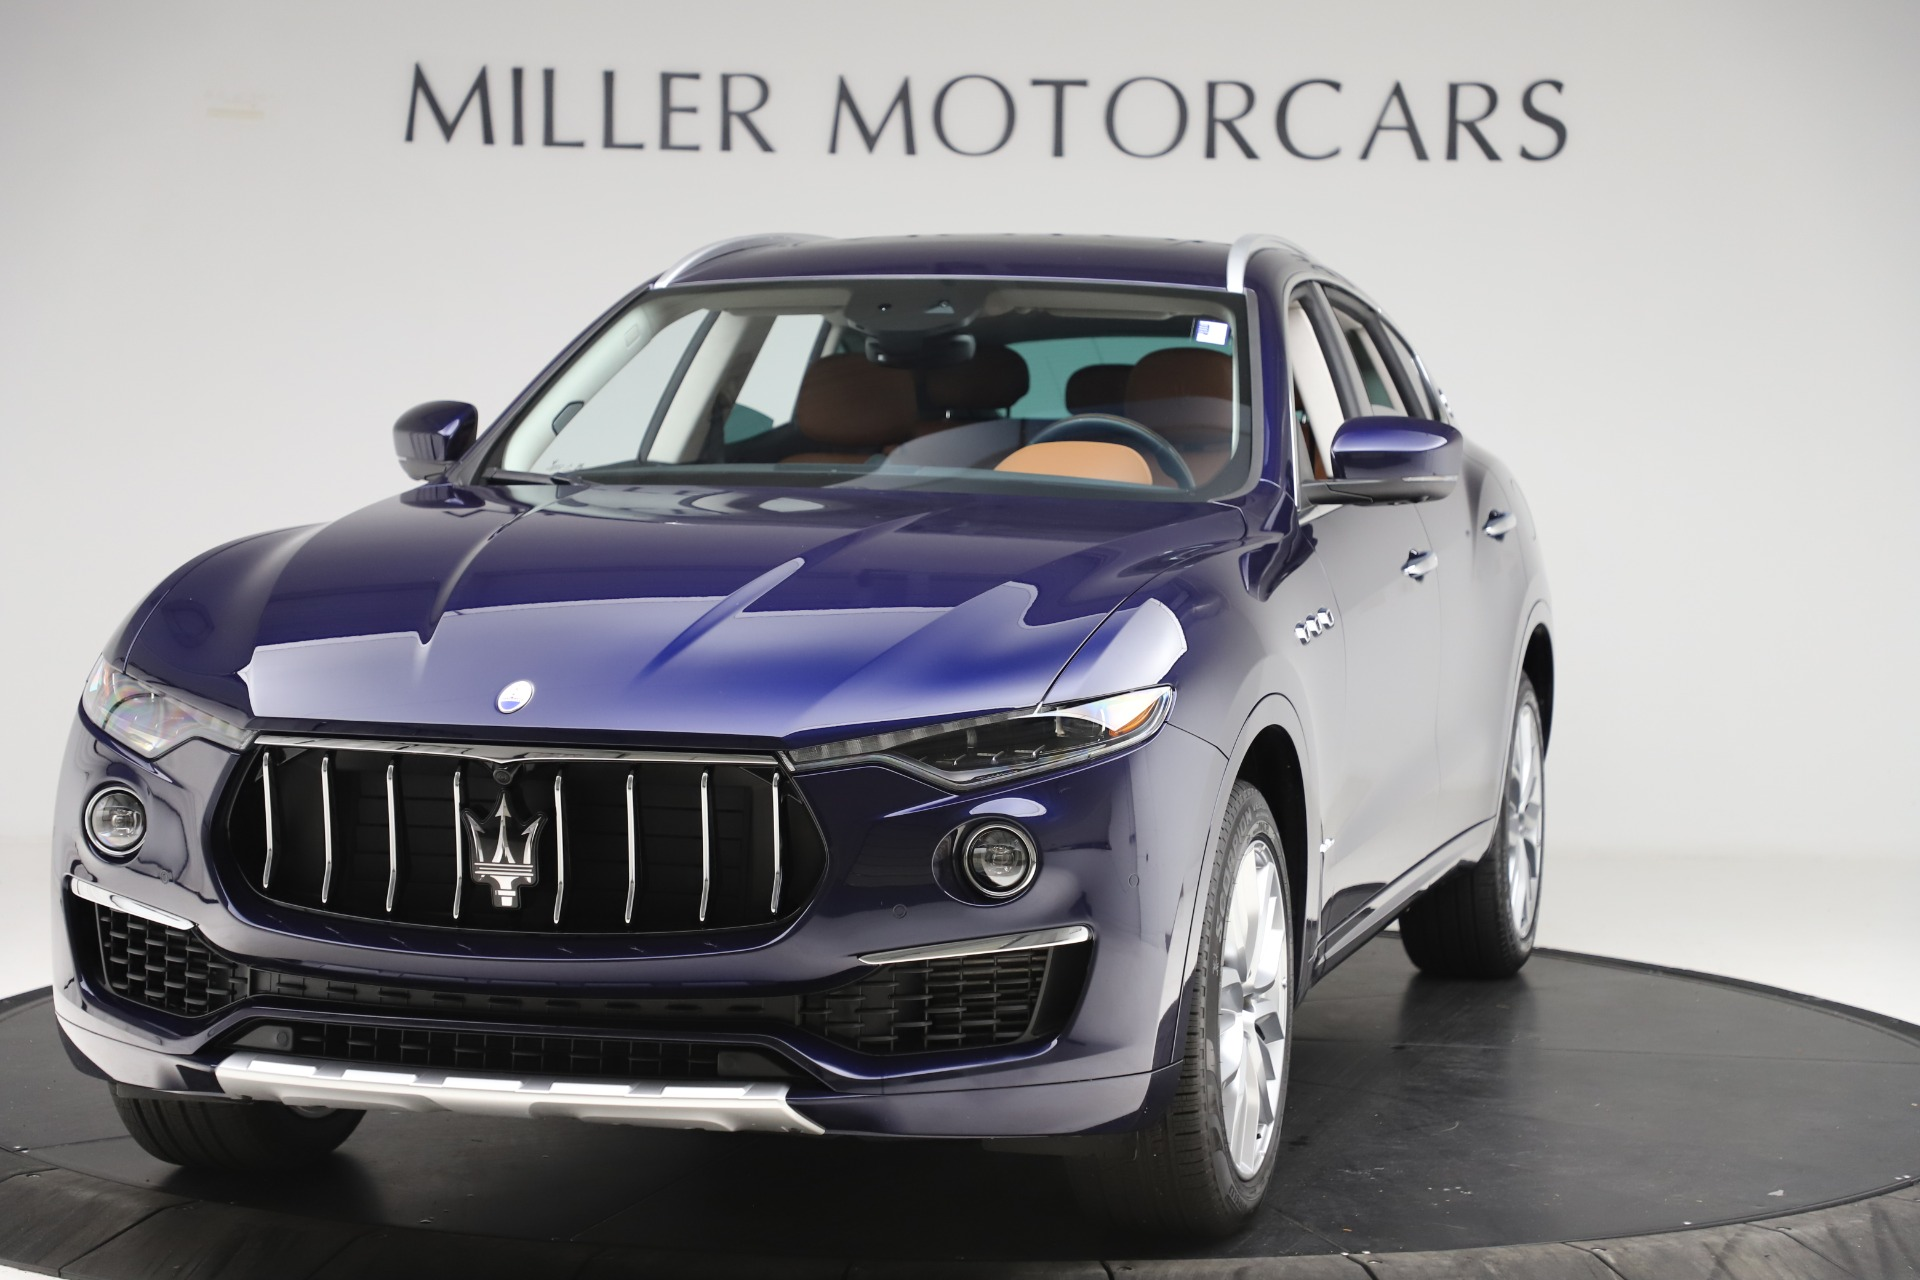 New 2019 Maserati Levante GranLusso for sale Sold at Maserati of Westport in Westport CT 06880 1